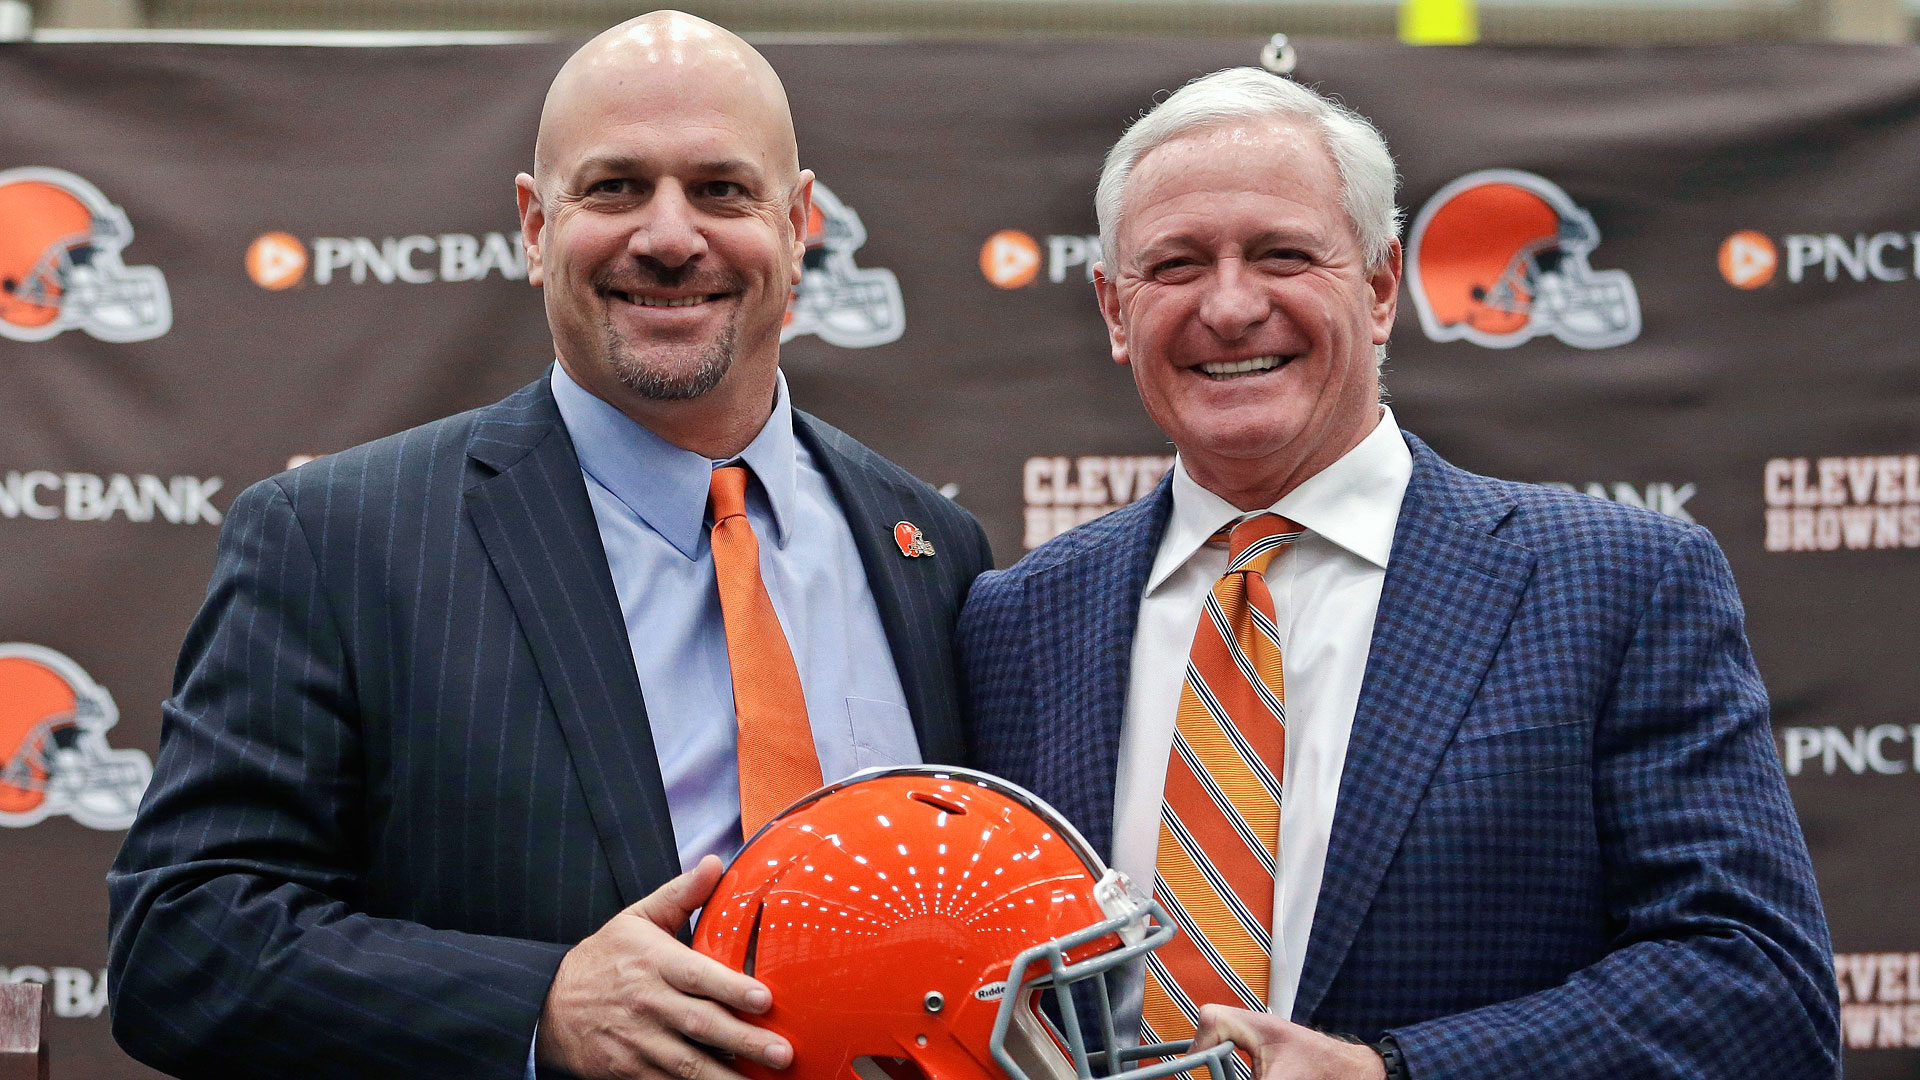 Mike Pettine-012314-AP-FTR.jpg